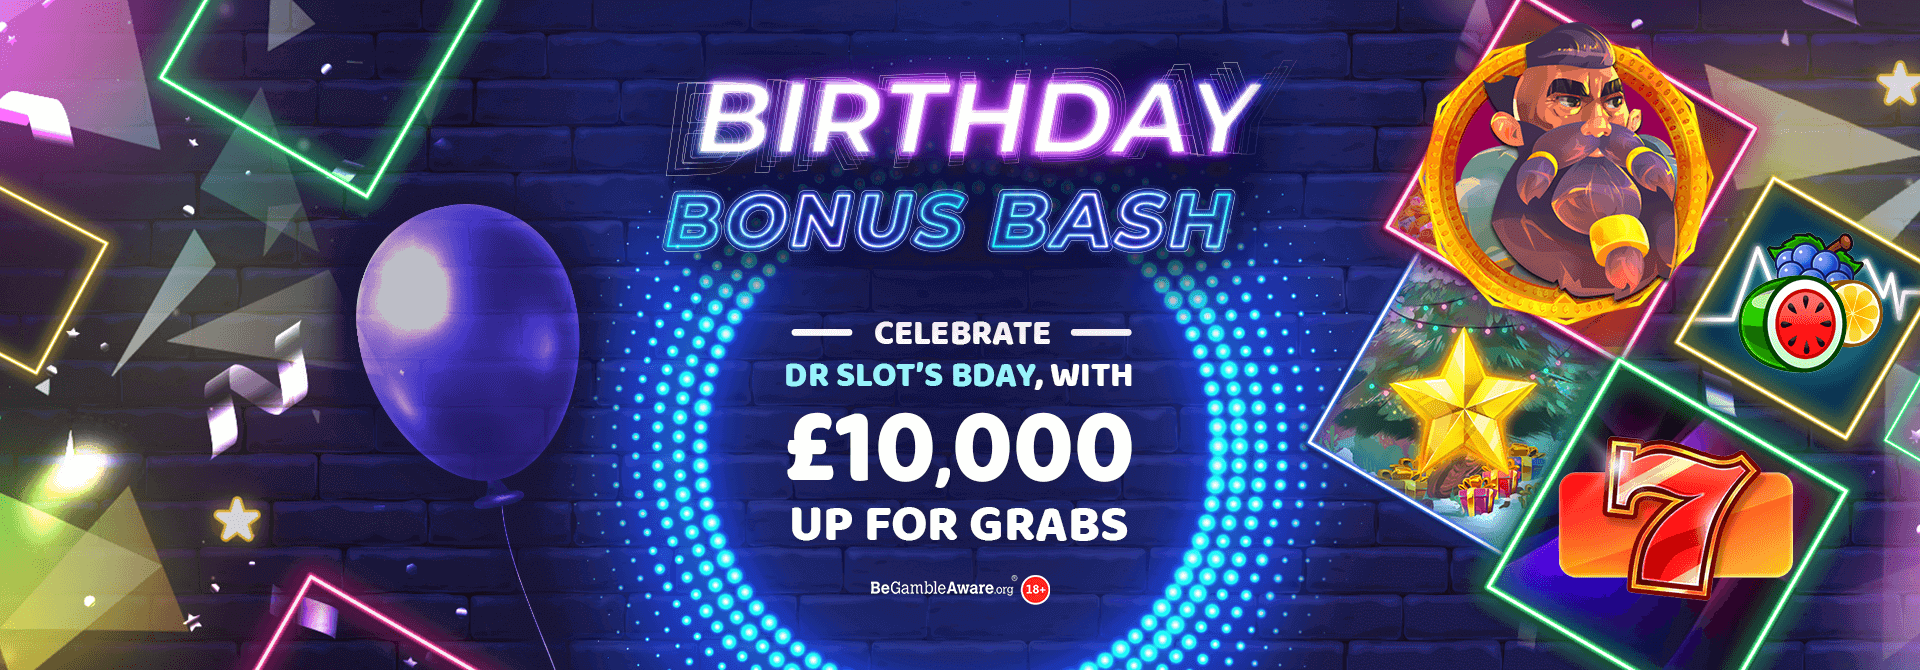 How much did you win with Dr Slot's Birthday Bonus Bash?